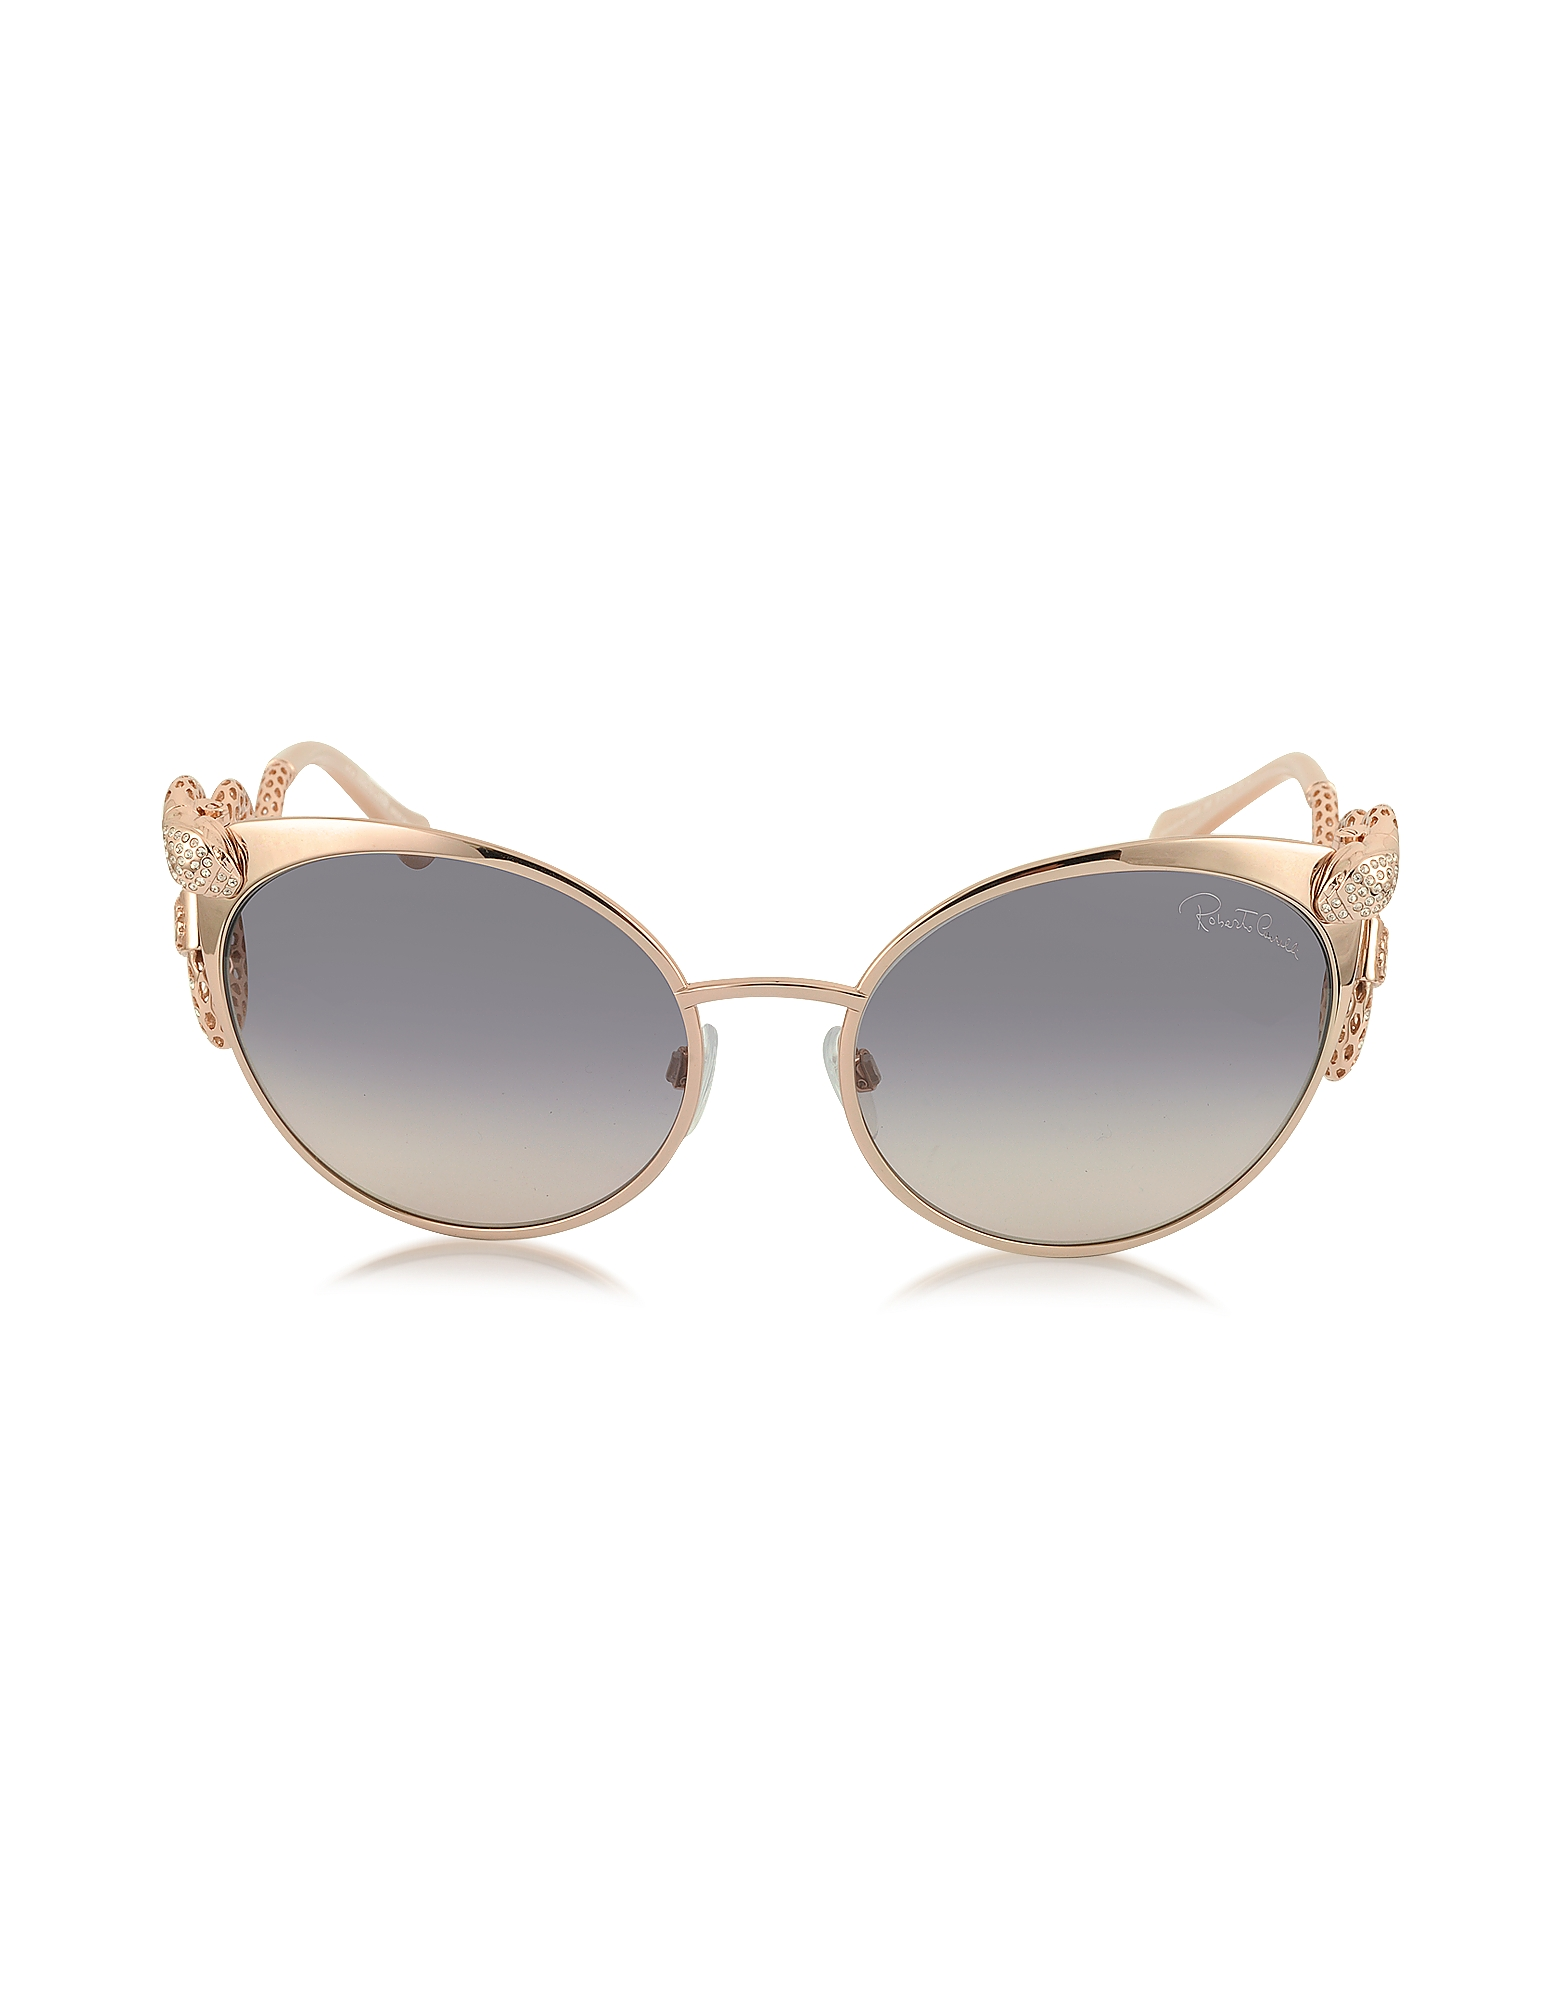 Roberto Cavalli Sunglasses, Menkalinan 890S 28F Goldtone Metal Cat Eye Women's Sunglasses w/Crystals